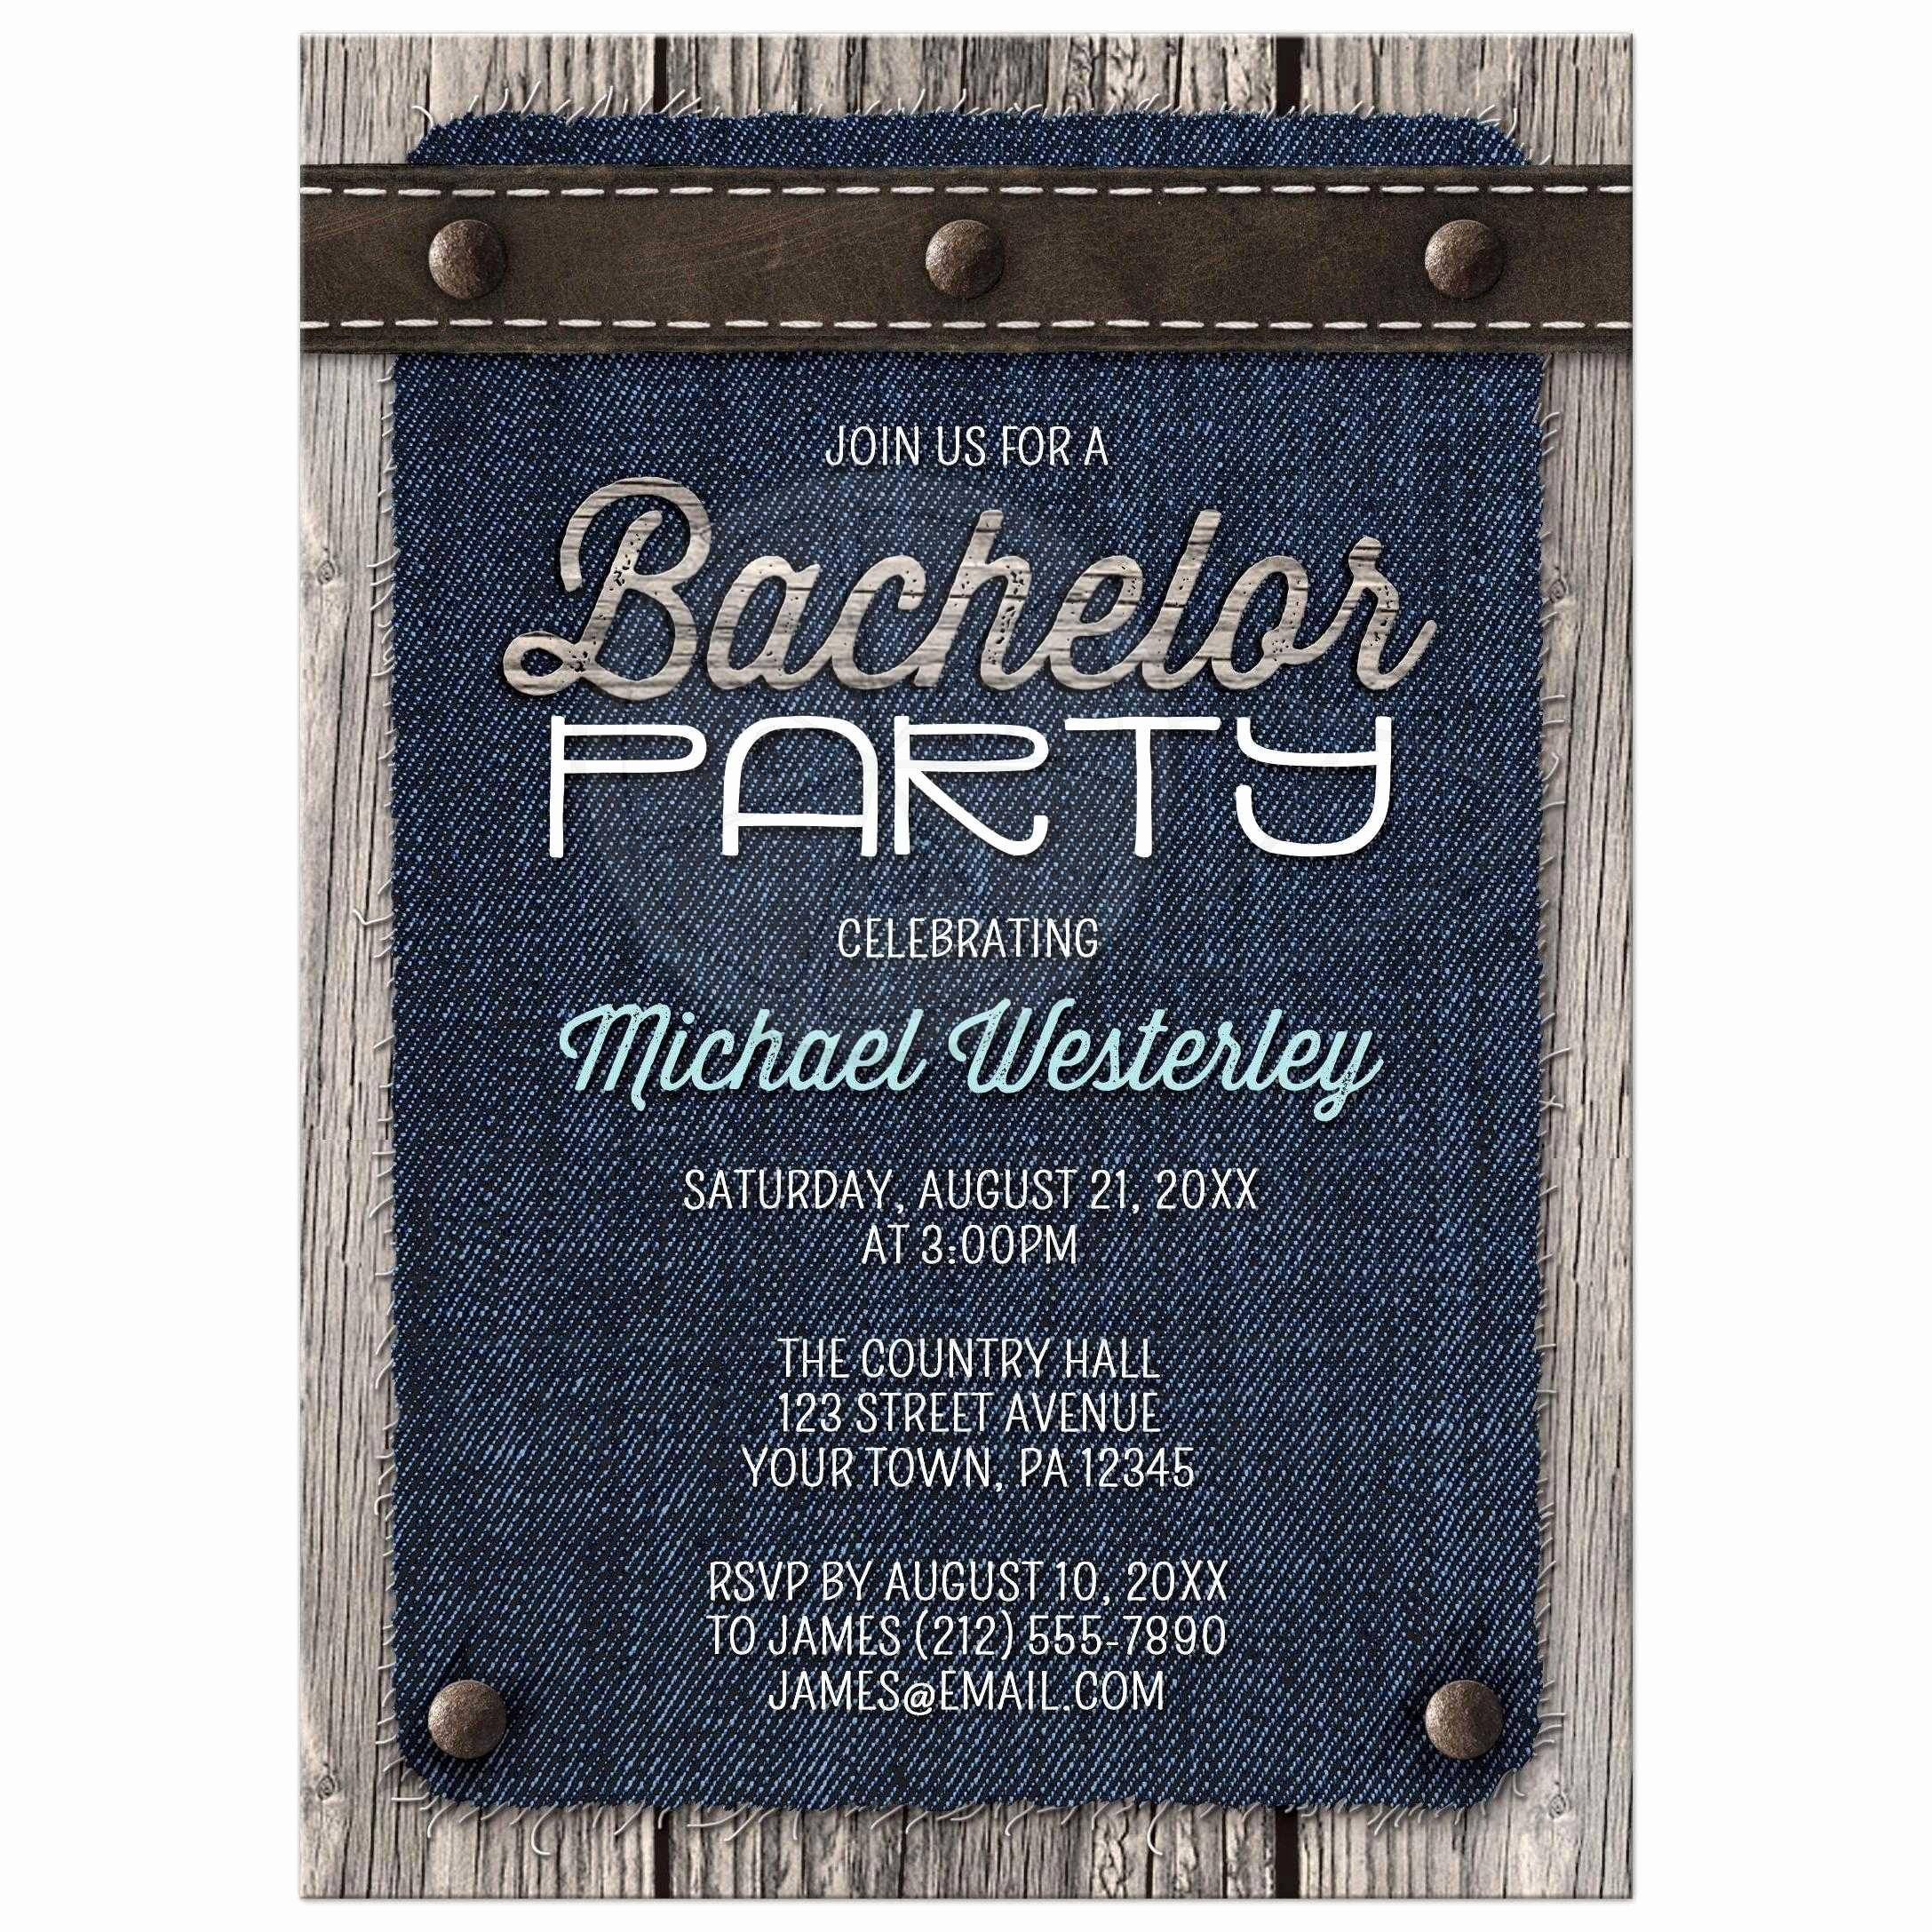 Bachelor Party Invitation Template Unique Bachelor Party Invitations